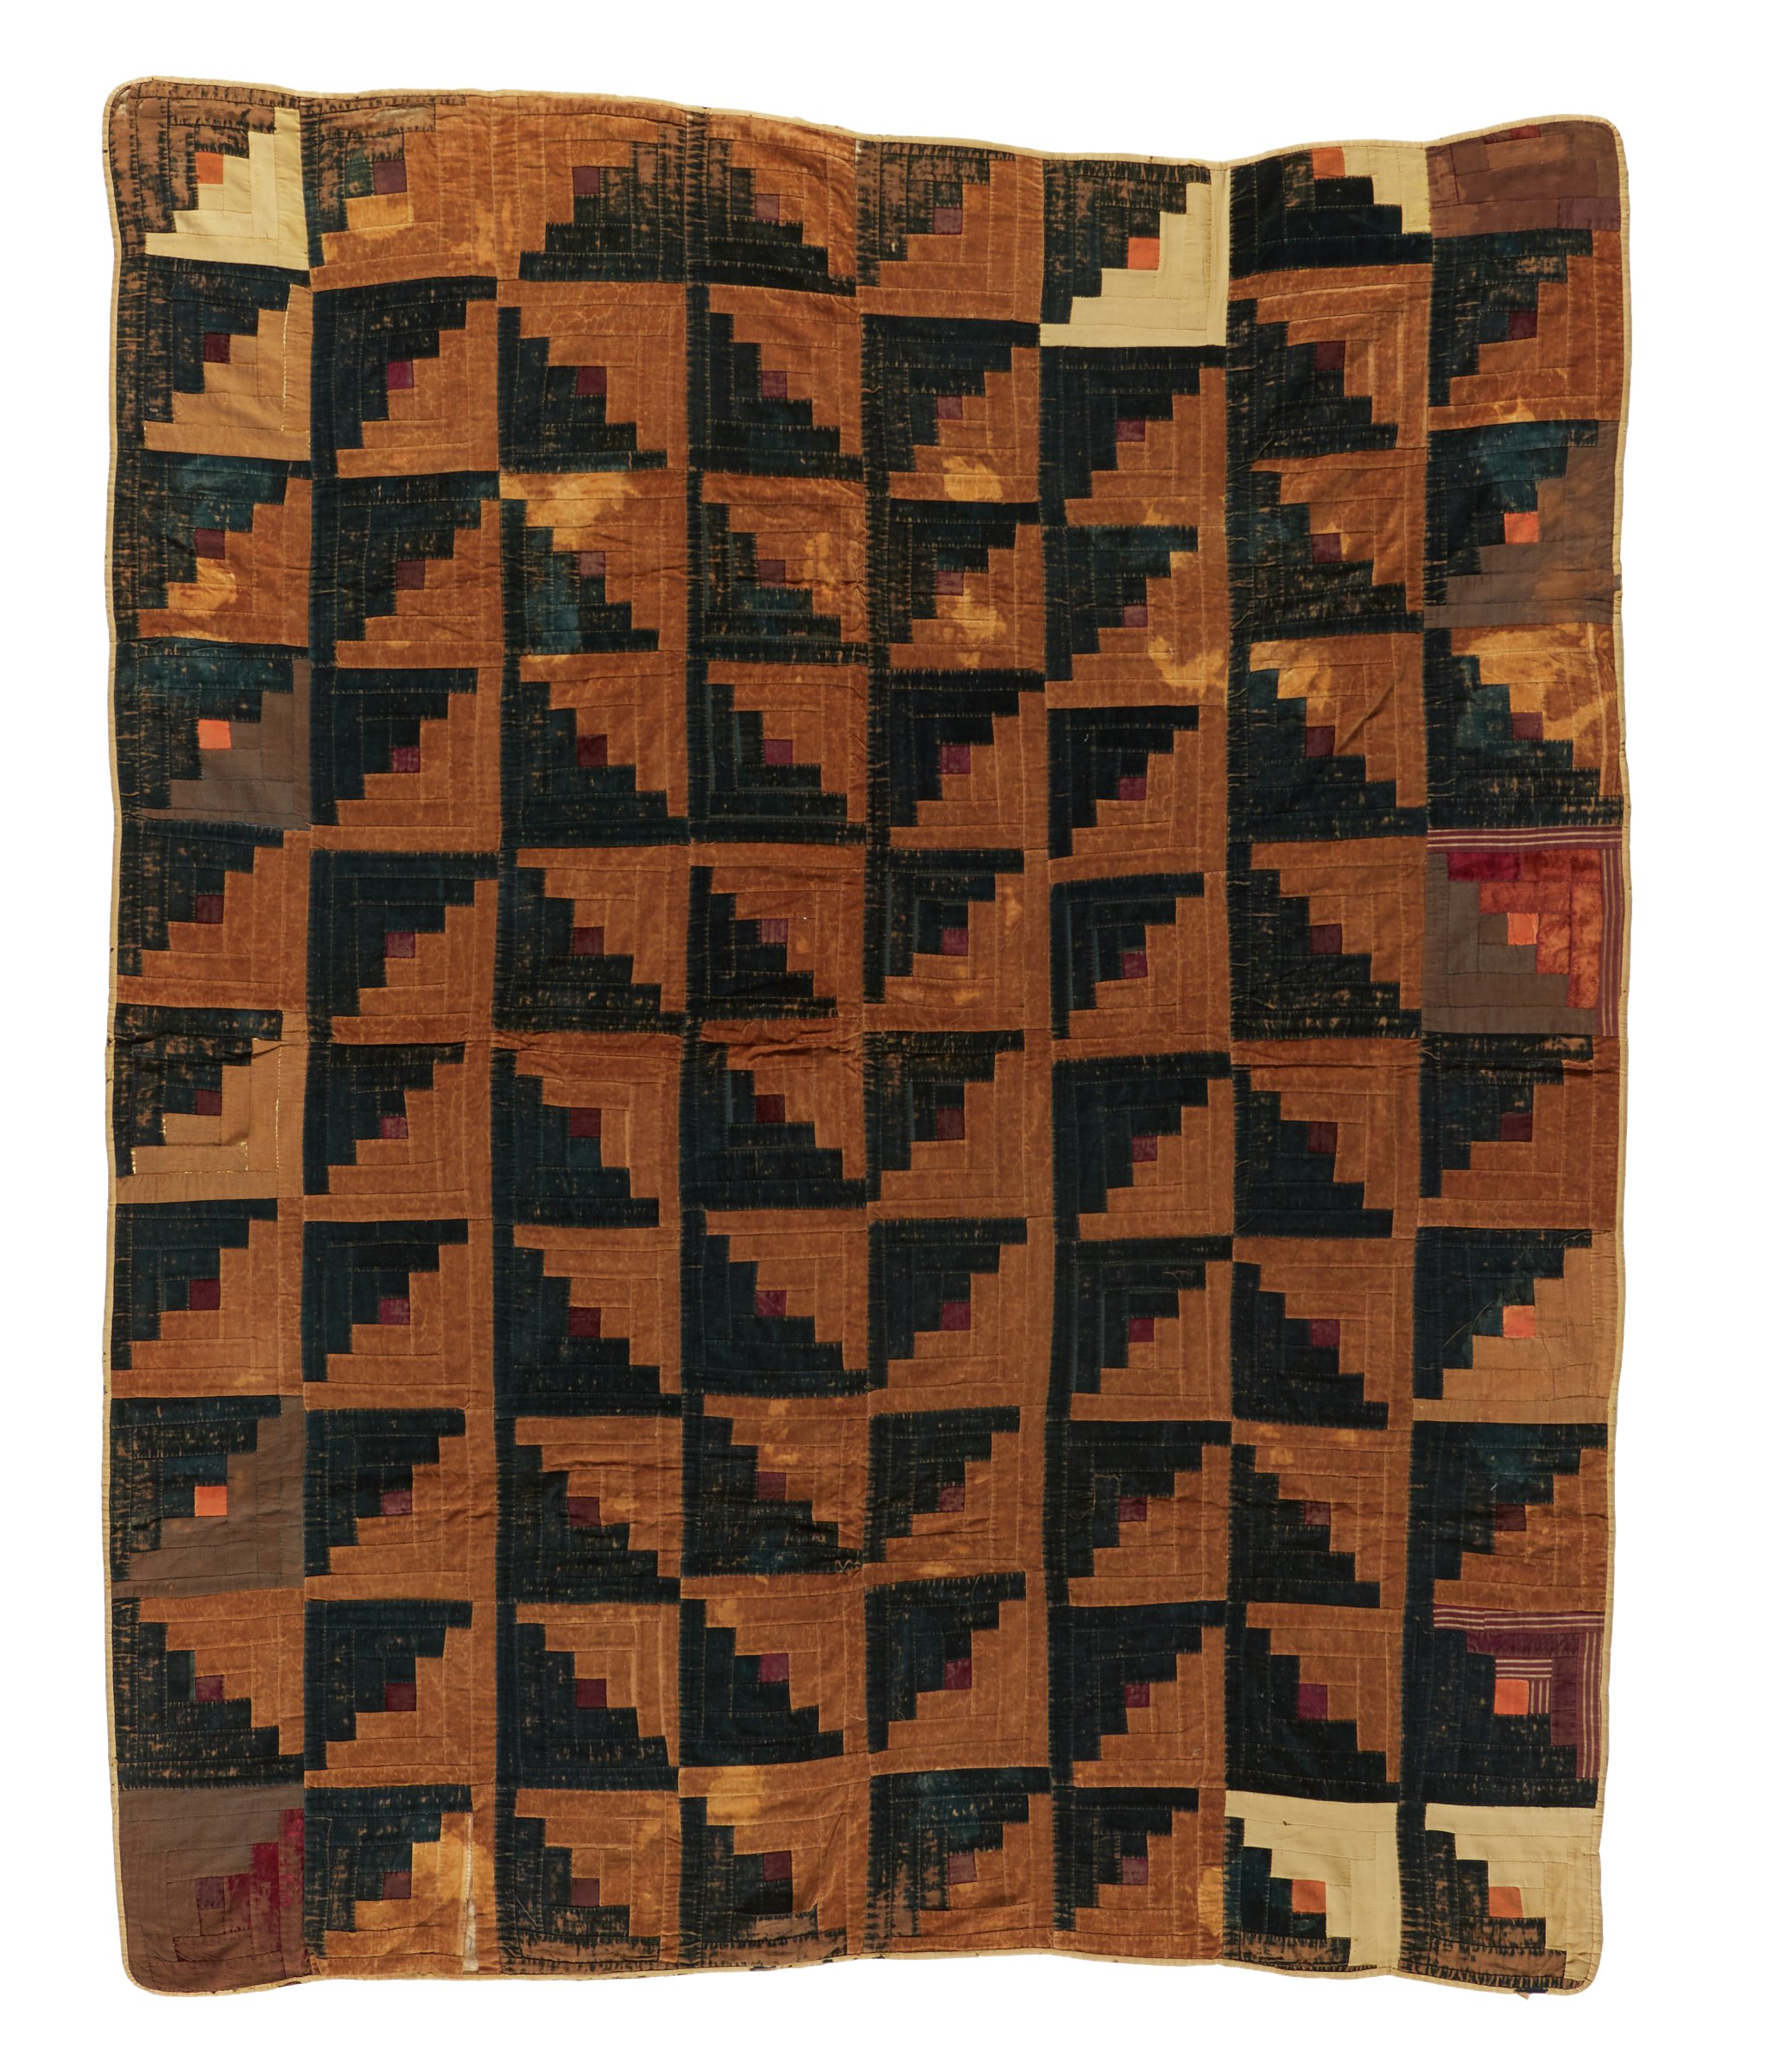 Large, hand-sewn rectangular quilt of cotton velvet, cotton and wool, in the Log Cabin pattern comprised of a grid of squares of crushed brown velvet strips and opposing green strips with a single maroon square in the center, with beige edging, the backing in a printed cotton floral fabric in shades of brown and red, repairs have been made throughout with orange and rust-colored velvet and brown cotton.